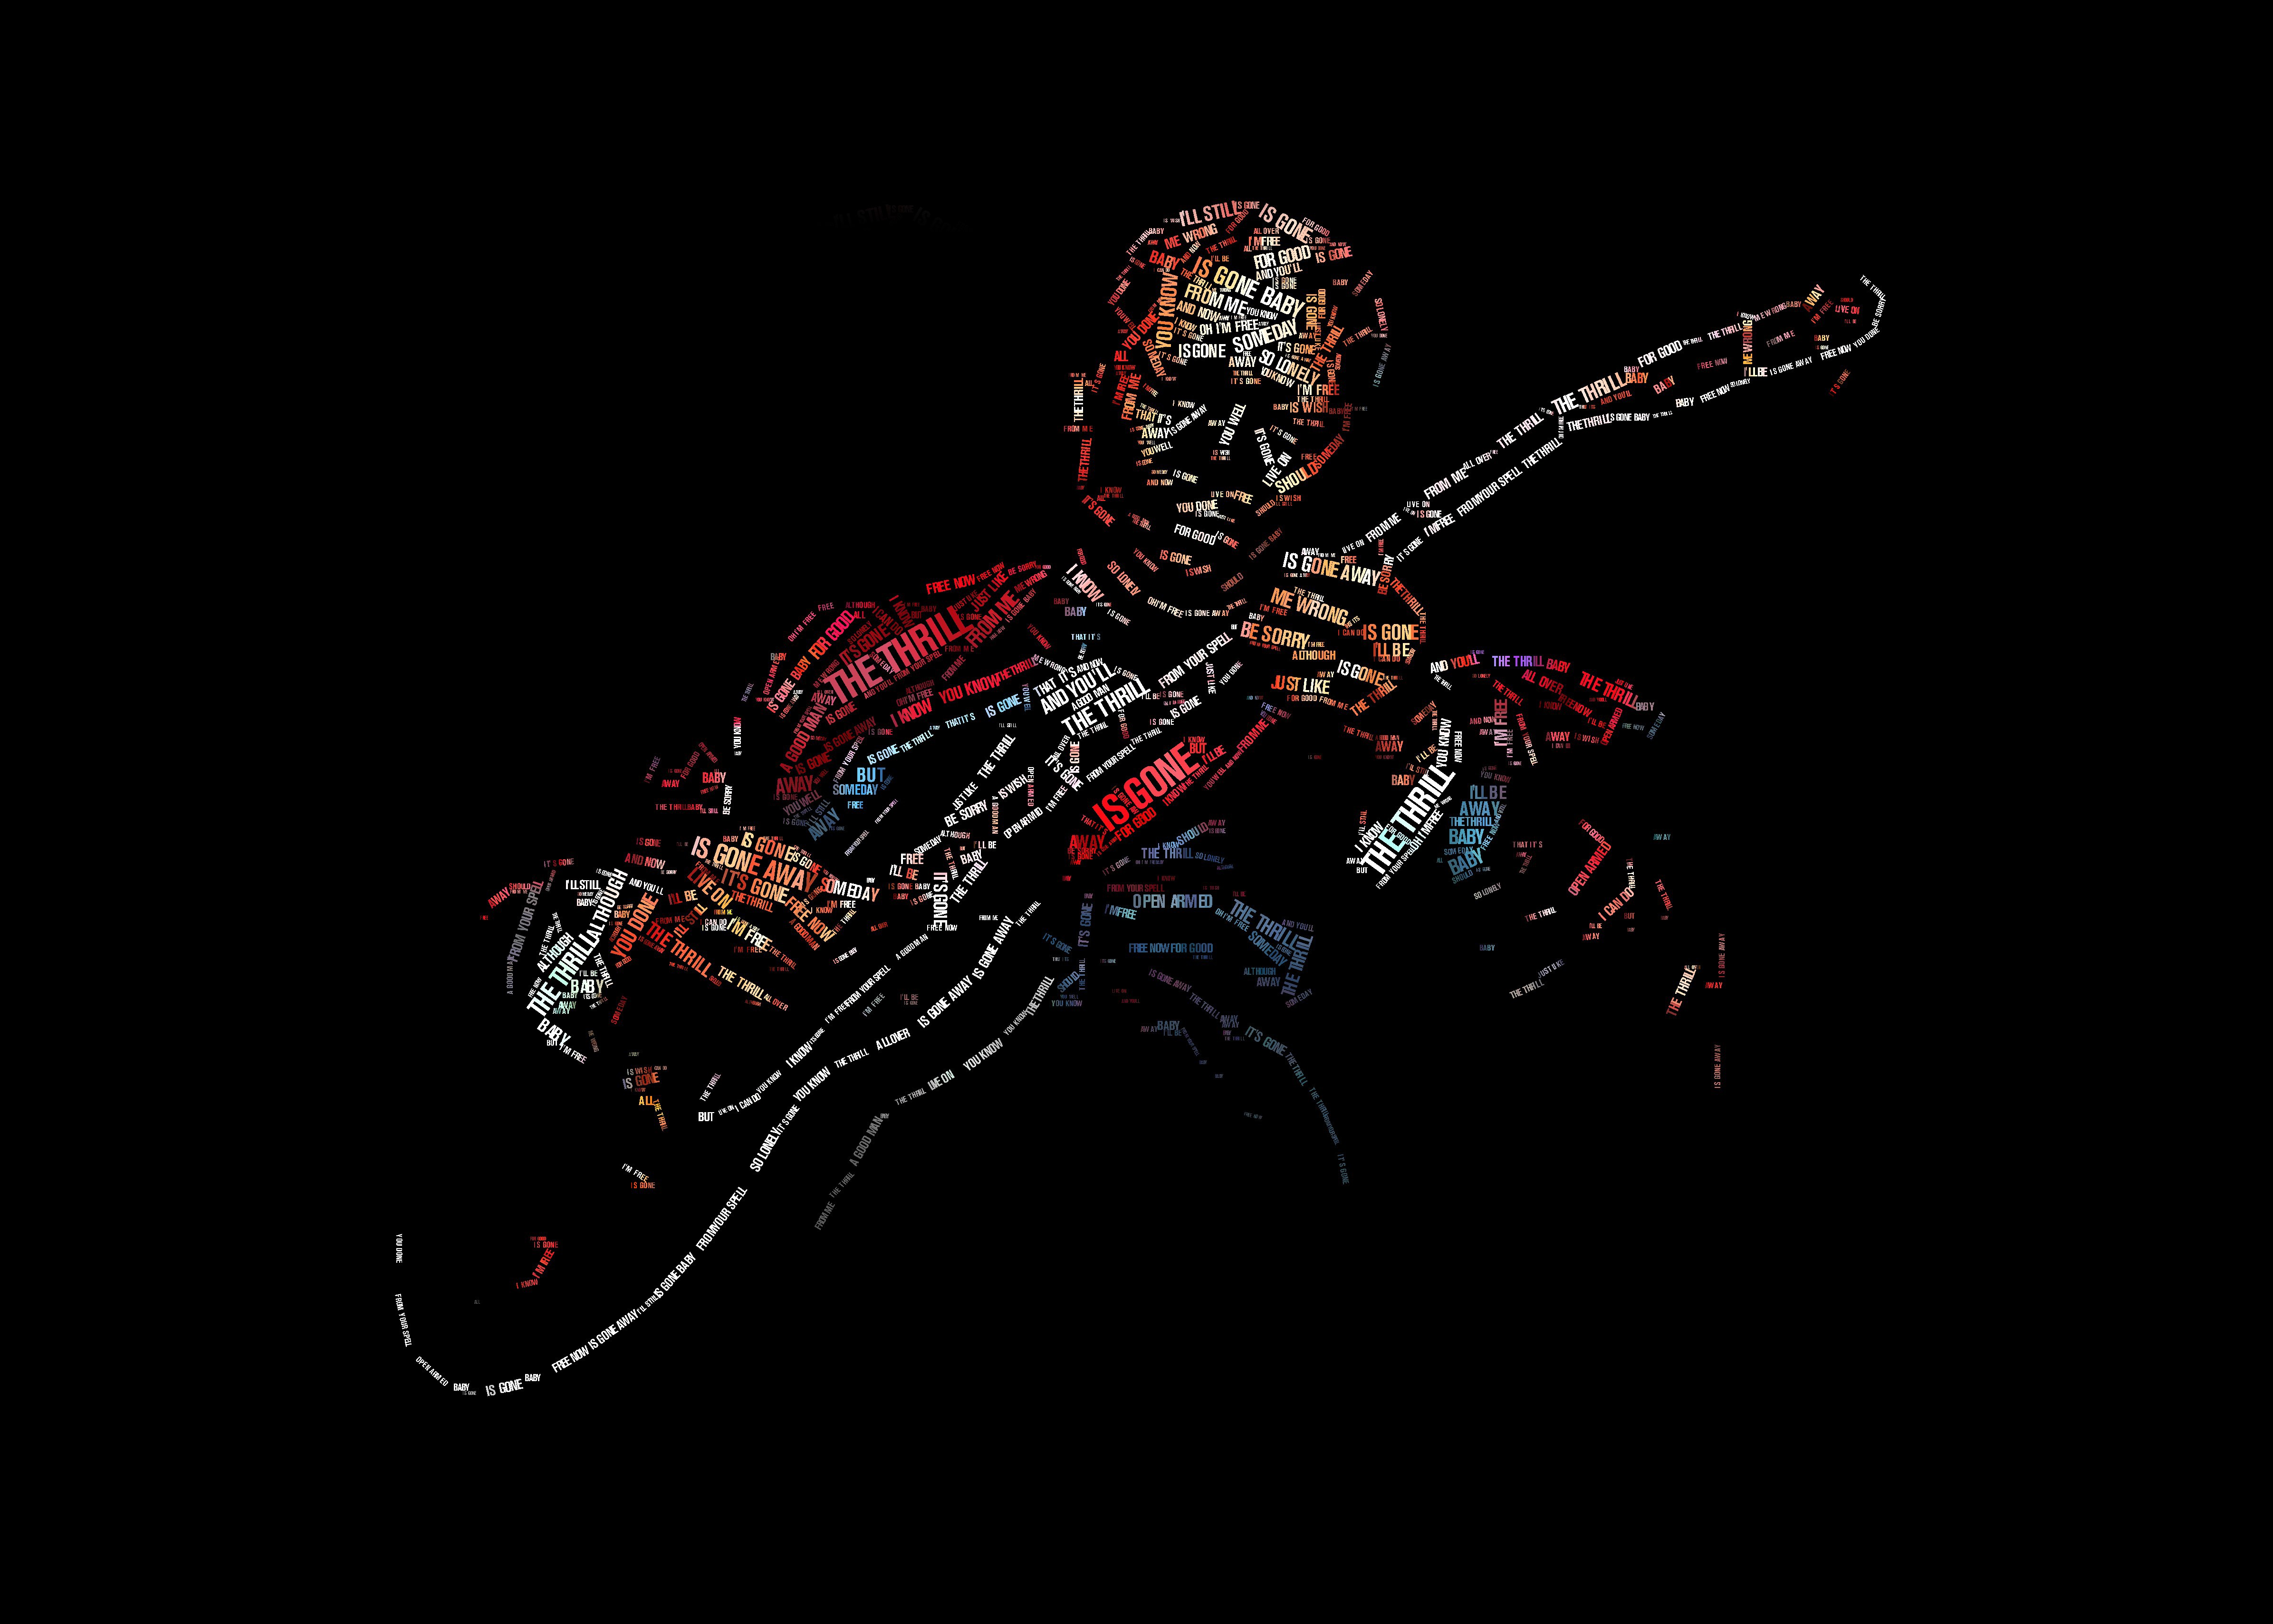 Bb king, Riley b king, Musician, Guitar, Blues wallpapers and backgrounds